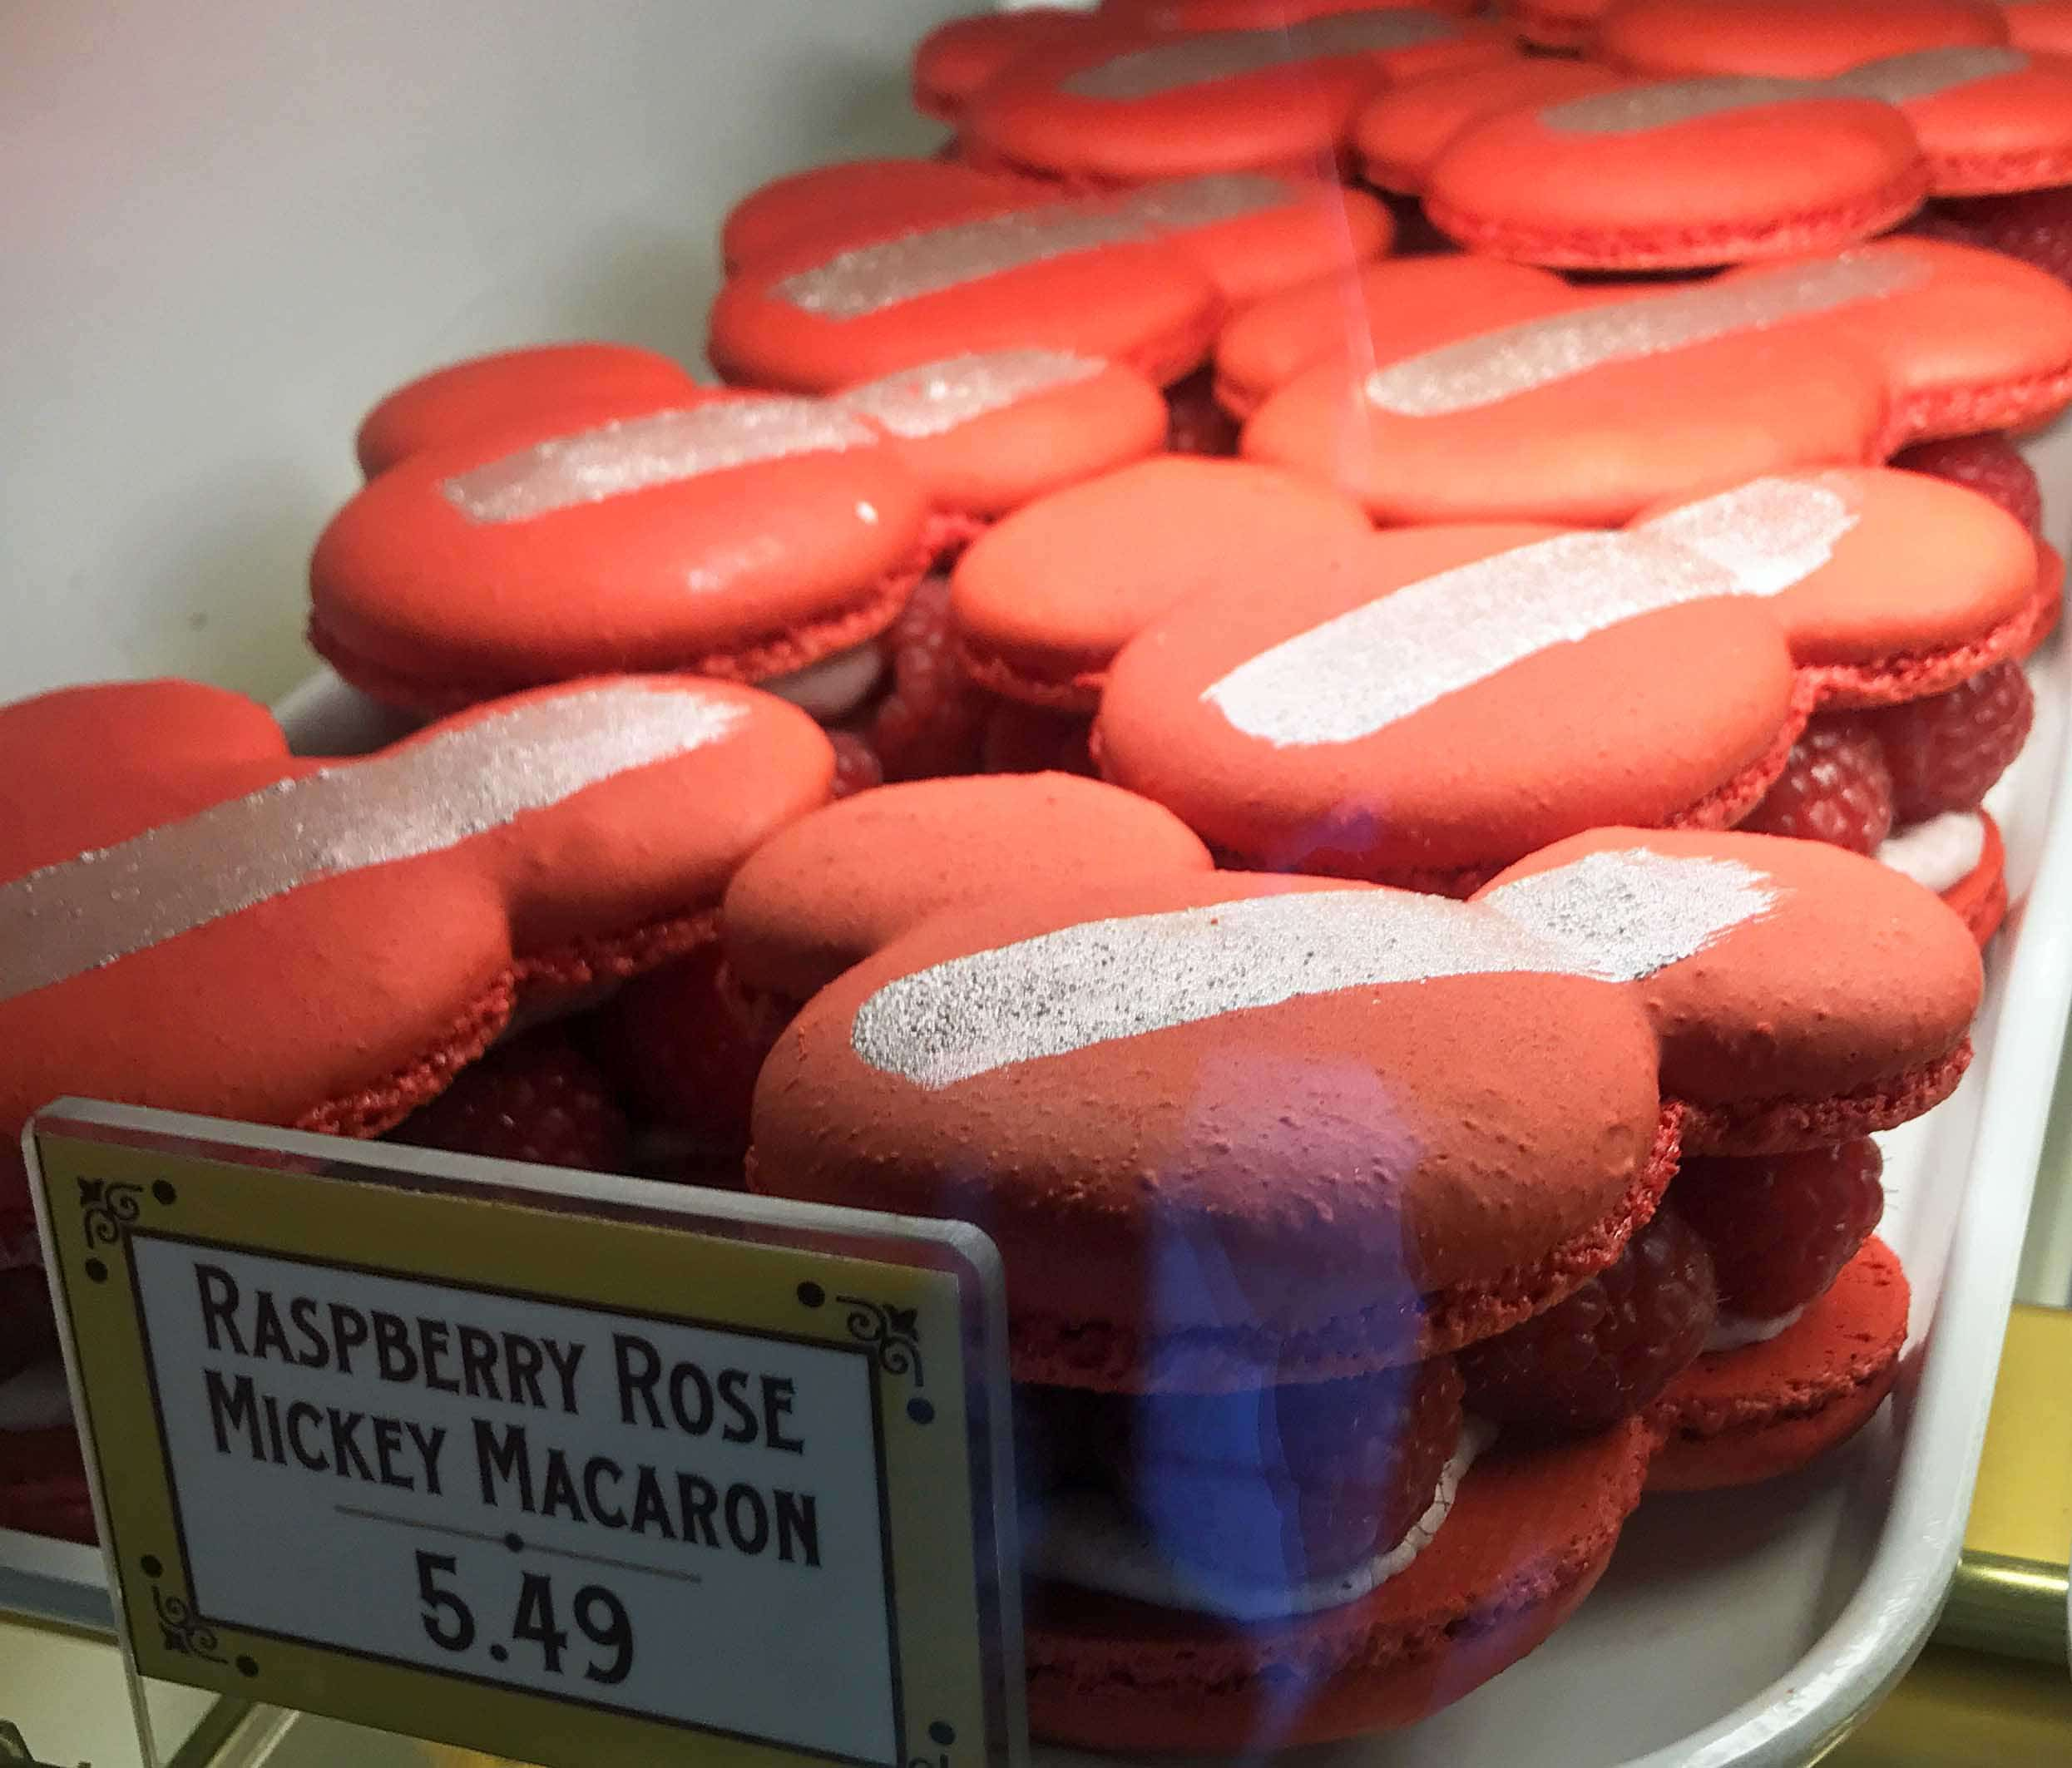 Raspberry Rose Mickey Macaron. The Best Eats and Treats at Disneyland. The best food to eat at Disneyland. A list of the most popular and favorite food at Disneyland parks. A list of what to eat at Disneyland. www.modernhoney.com